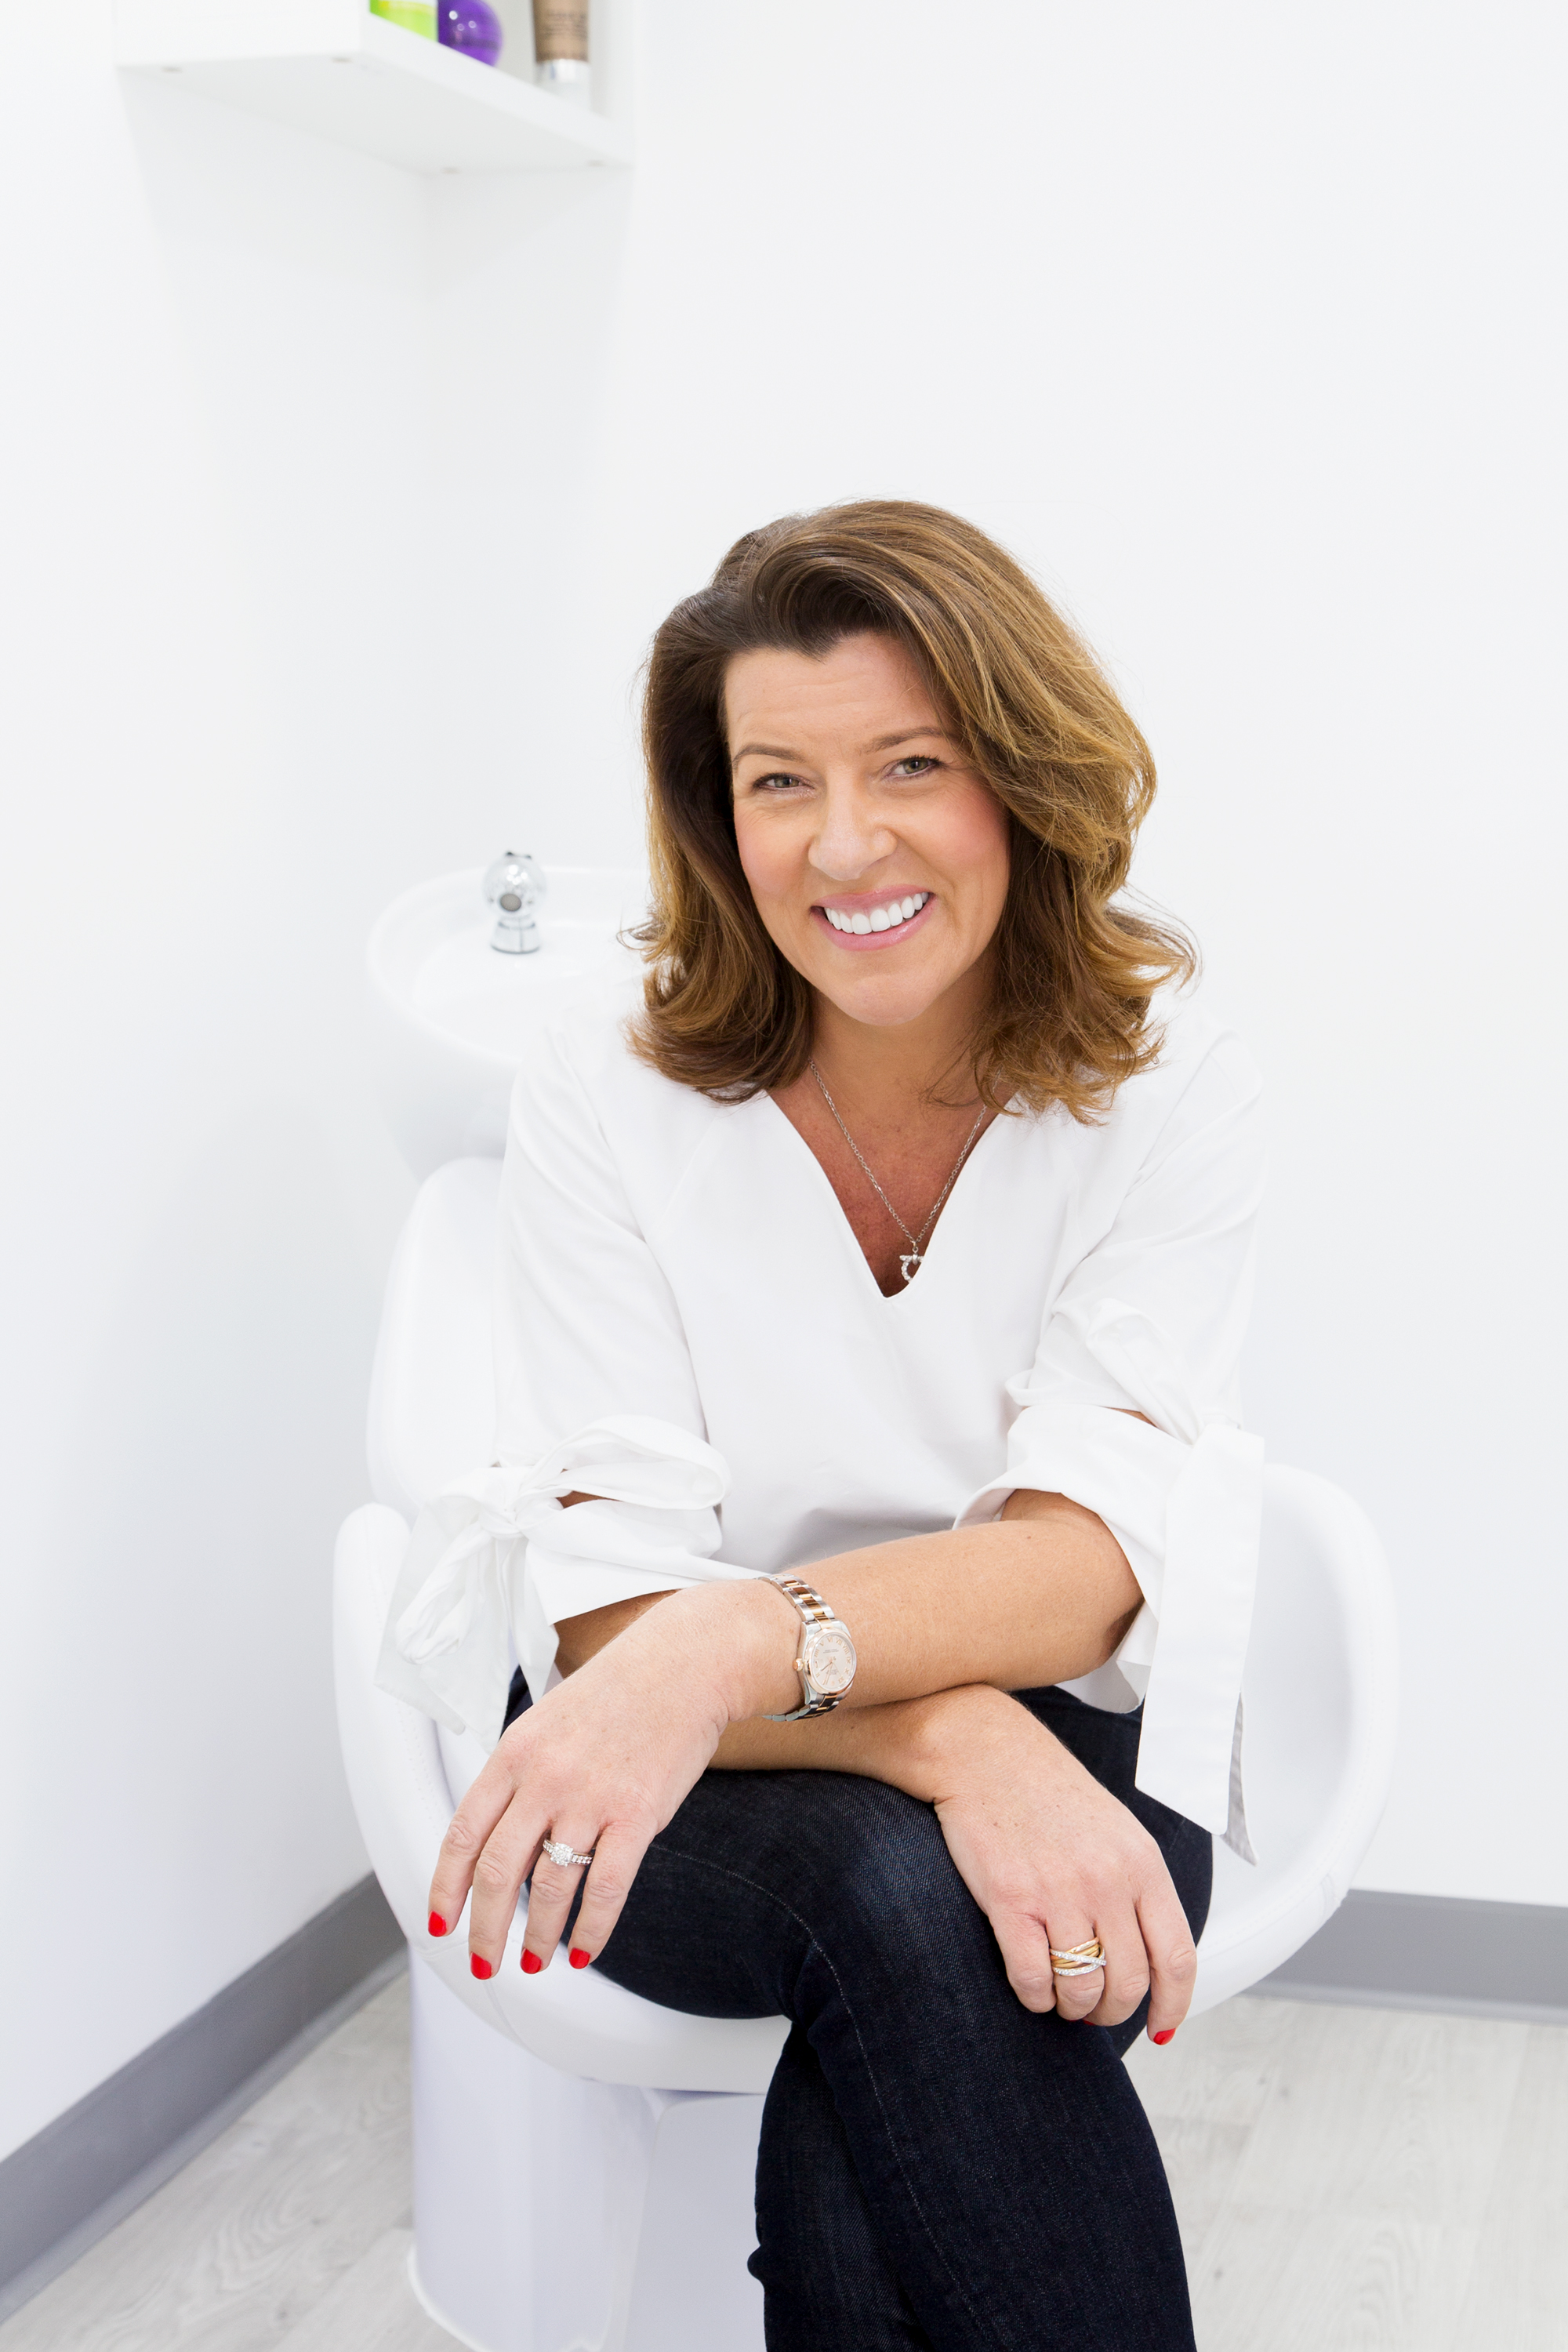 Roz Colthart, Founder of Salon Studios